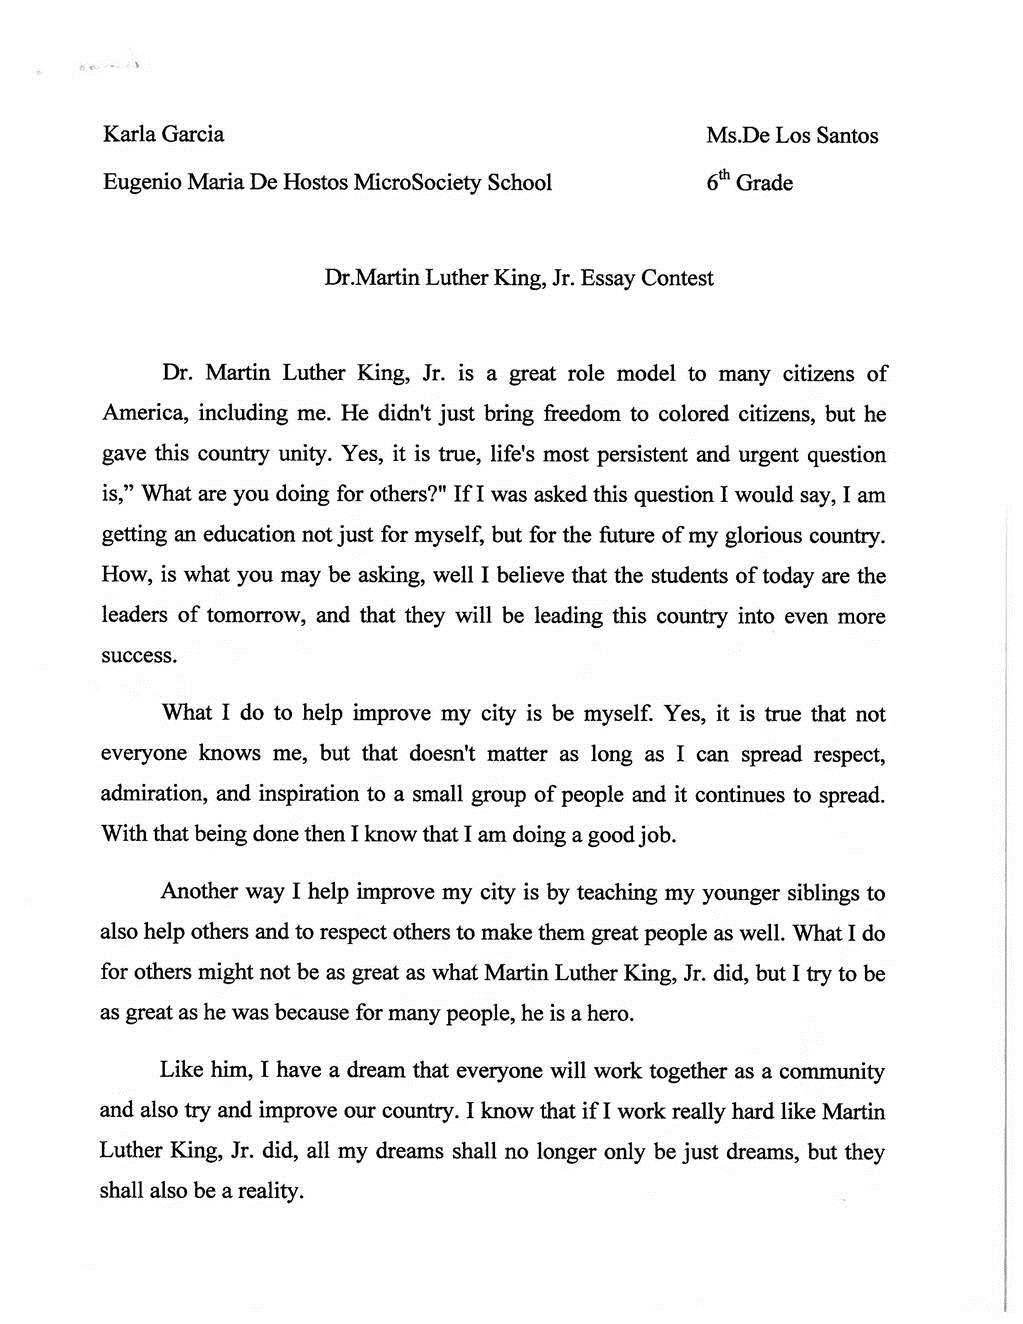 Cheat essay essay about martin luther king essay martin luther king